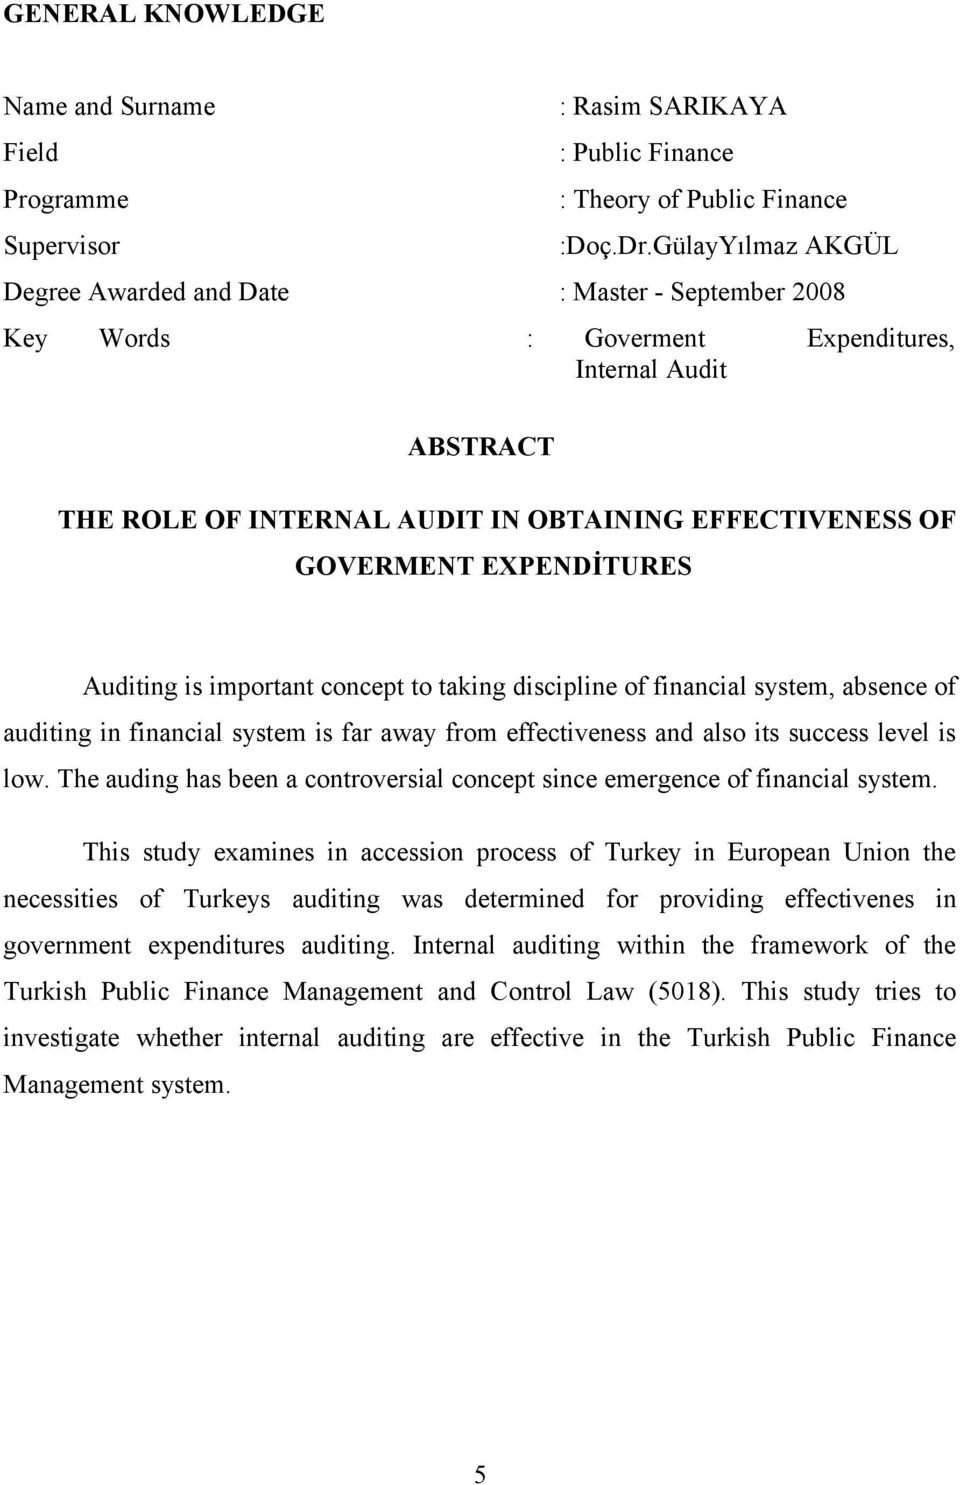 EXPENDİTURES Auditing is important concept to taking discipline of financial system, absence of auditing in financial system is far away from effectiveness and also its success level is low.